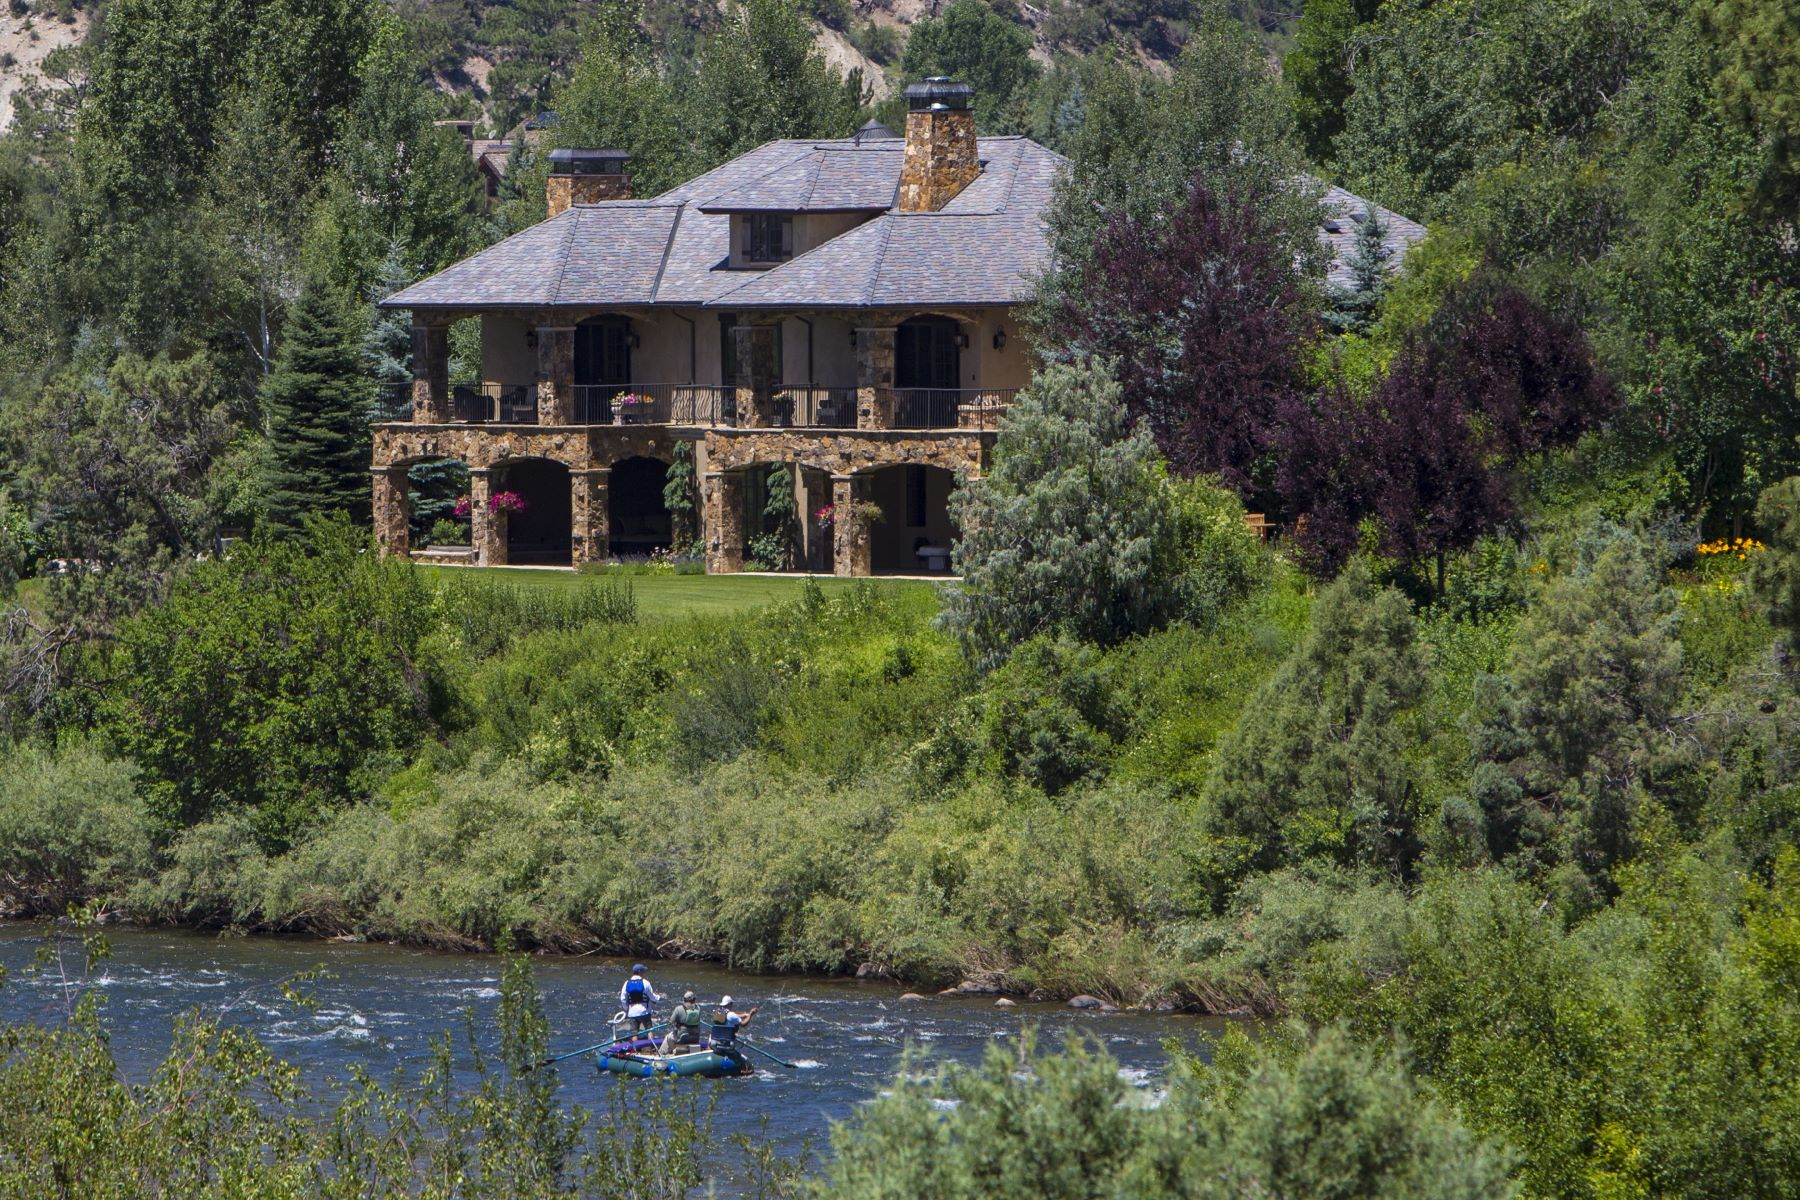 Single Family Home for Sale at Riverfront Italian Country Home 80 Alpen Glo Lane Carbondale, Colorado, 81623 United States